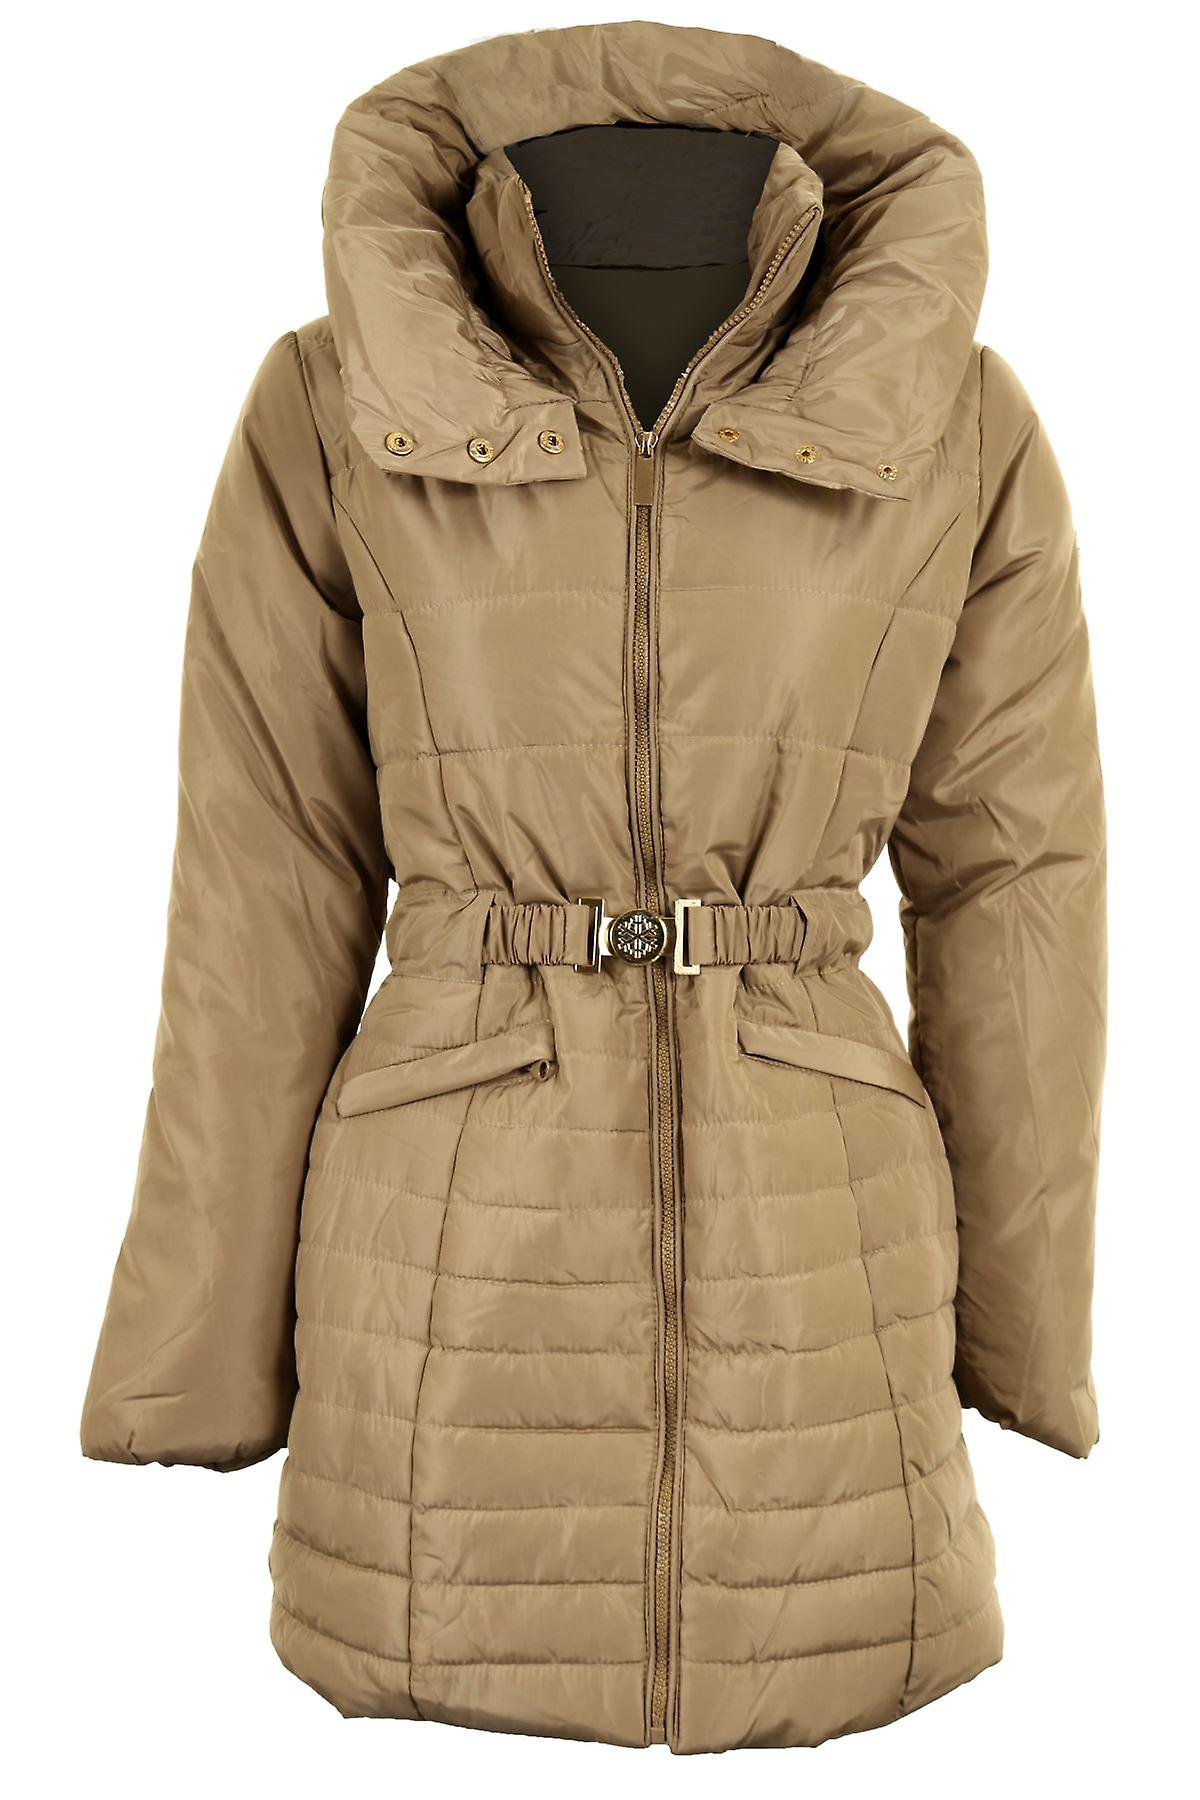 Ladies Quilted Padded Belted Puffer Black Beige Women's Winter Jacket Coat